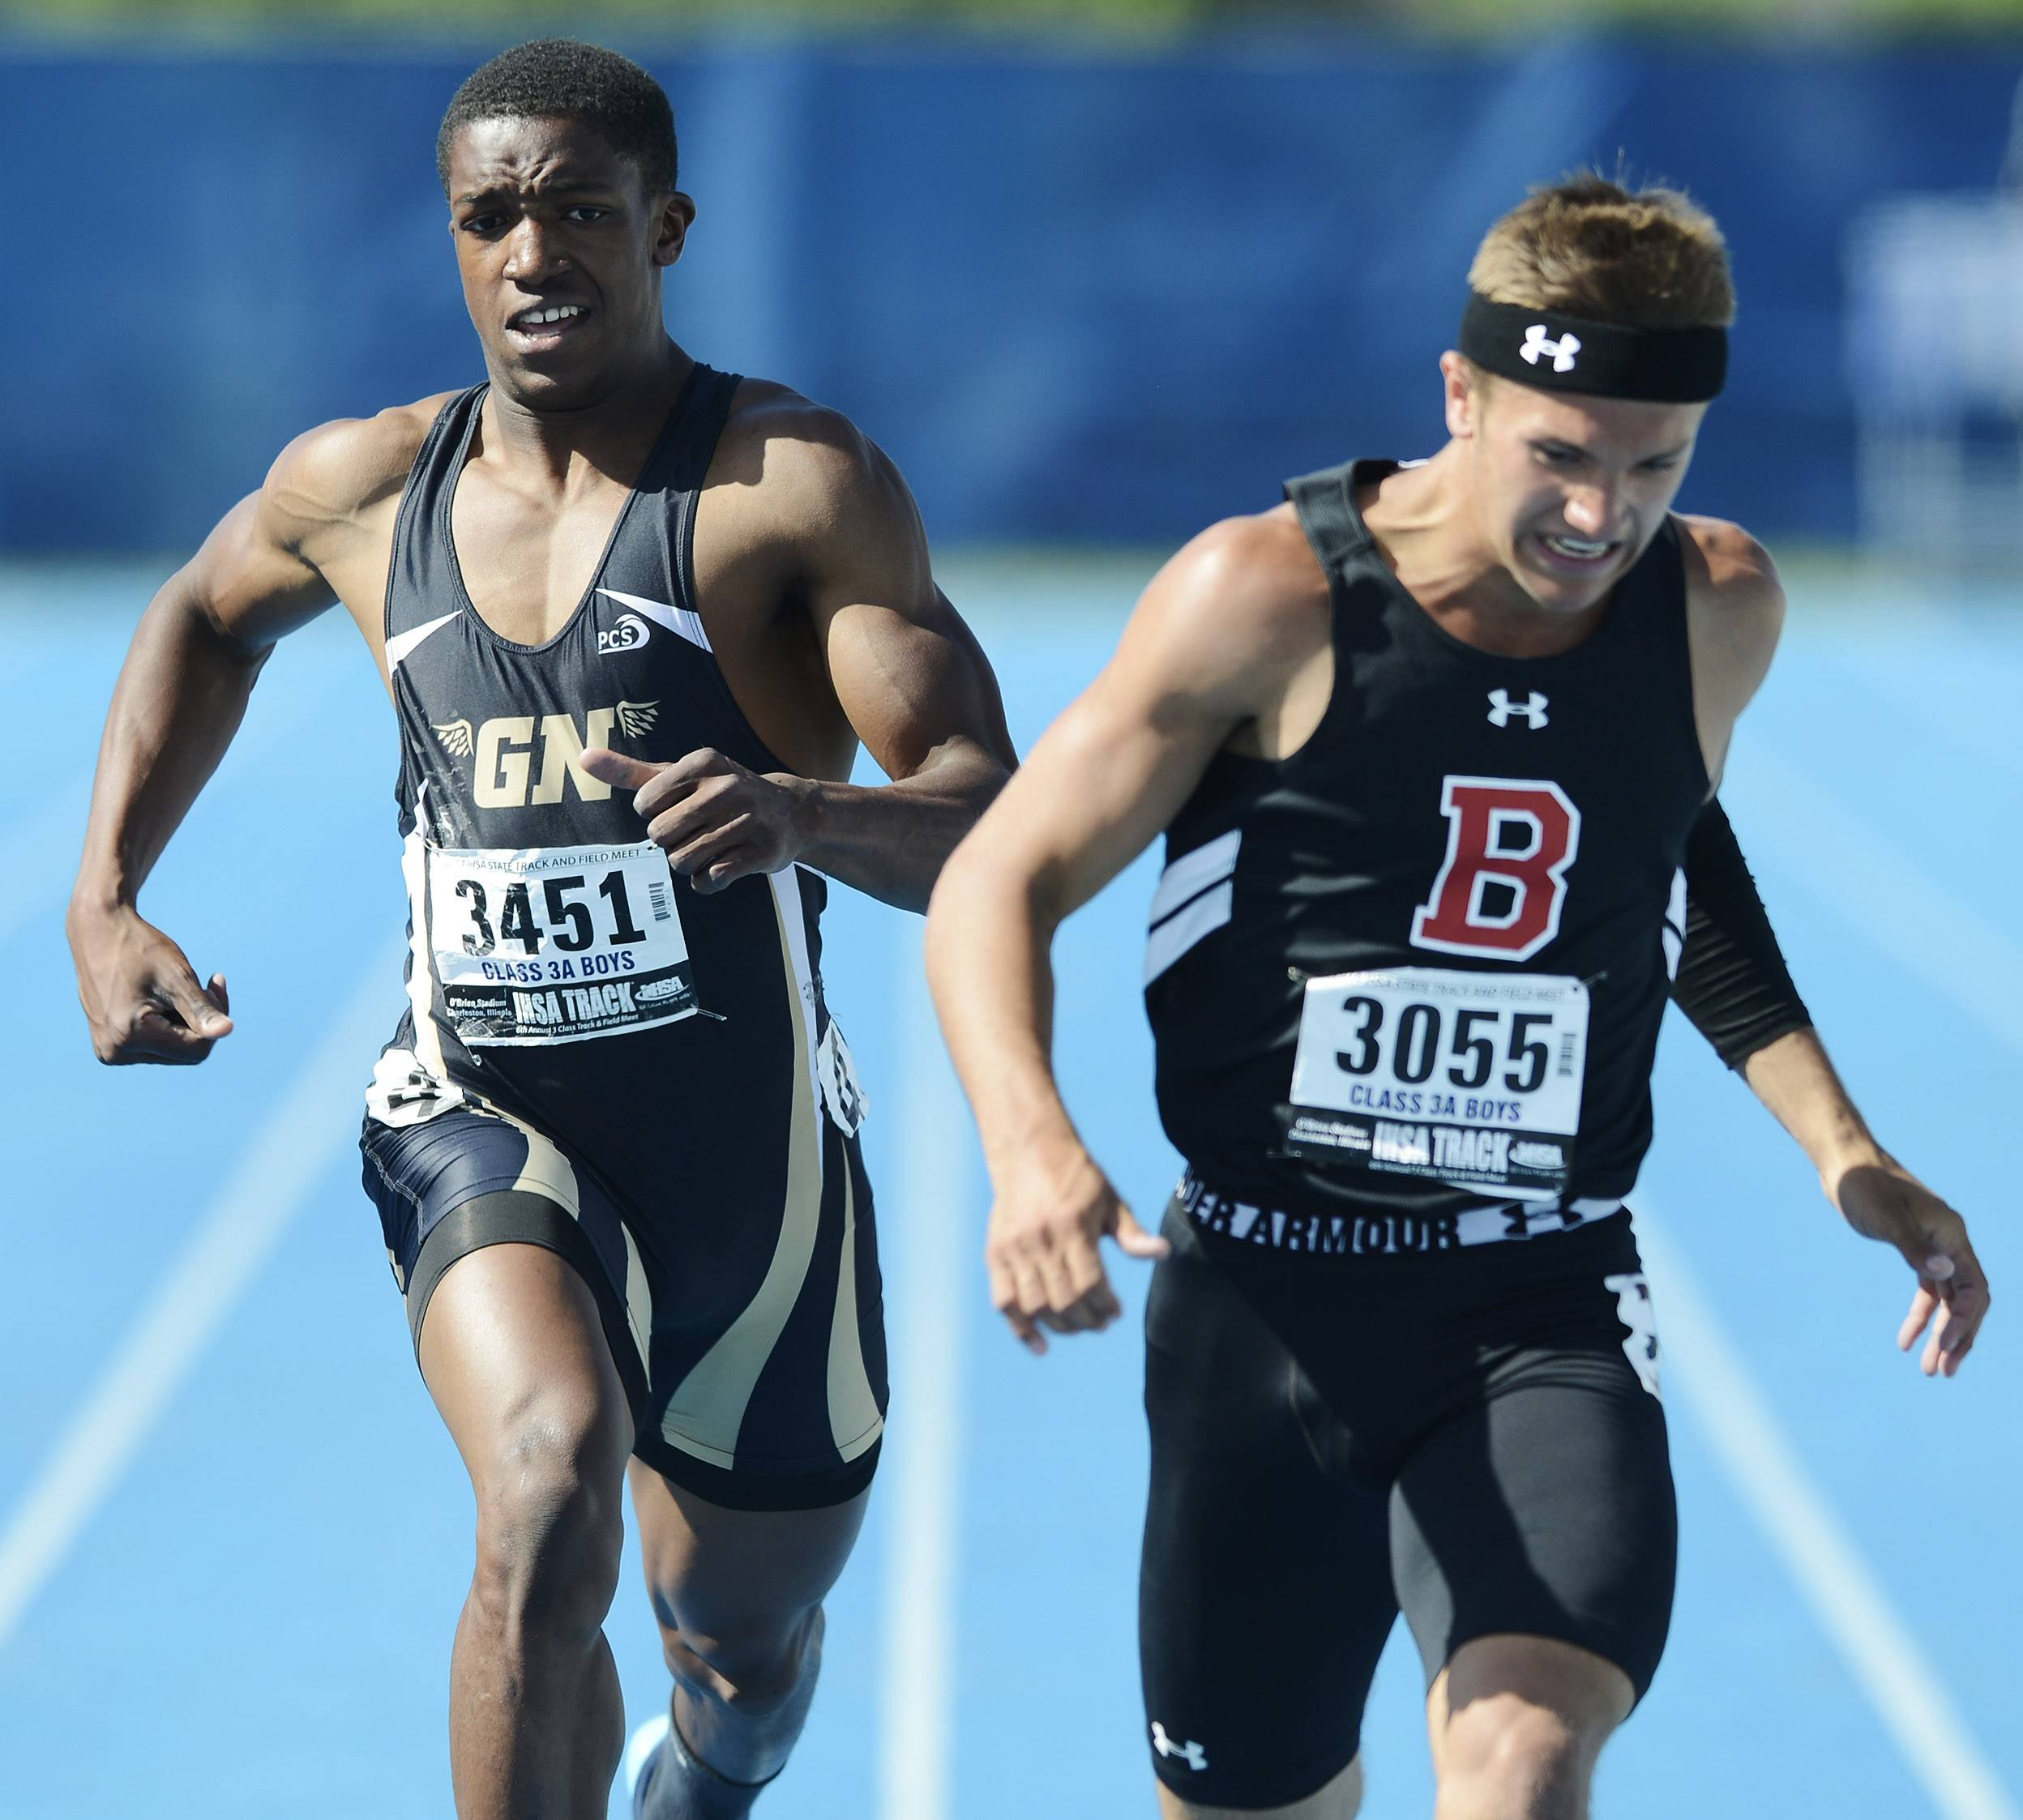 Barrington's Scotty Miller, right, and Grayslake North's Titus Booker cross the finish line in the 200-meter dash during the boys class 3A state track and field finals in Charleston Saturday.